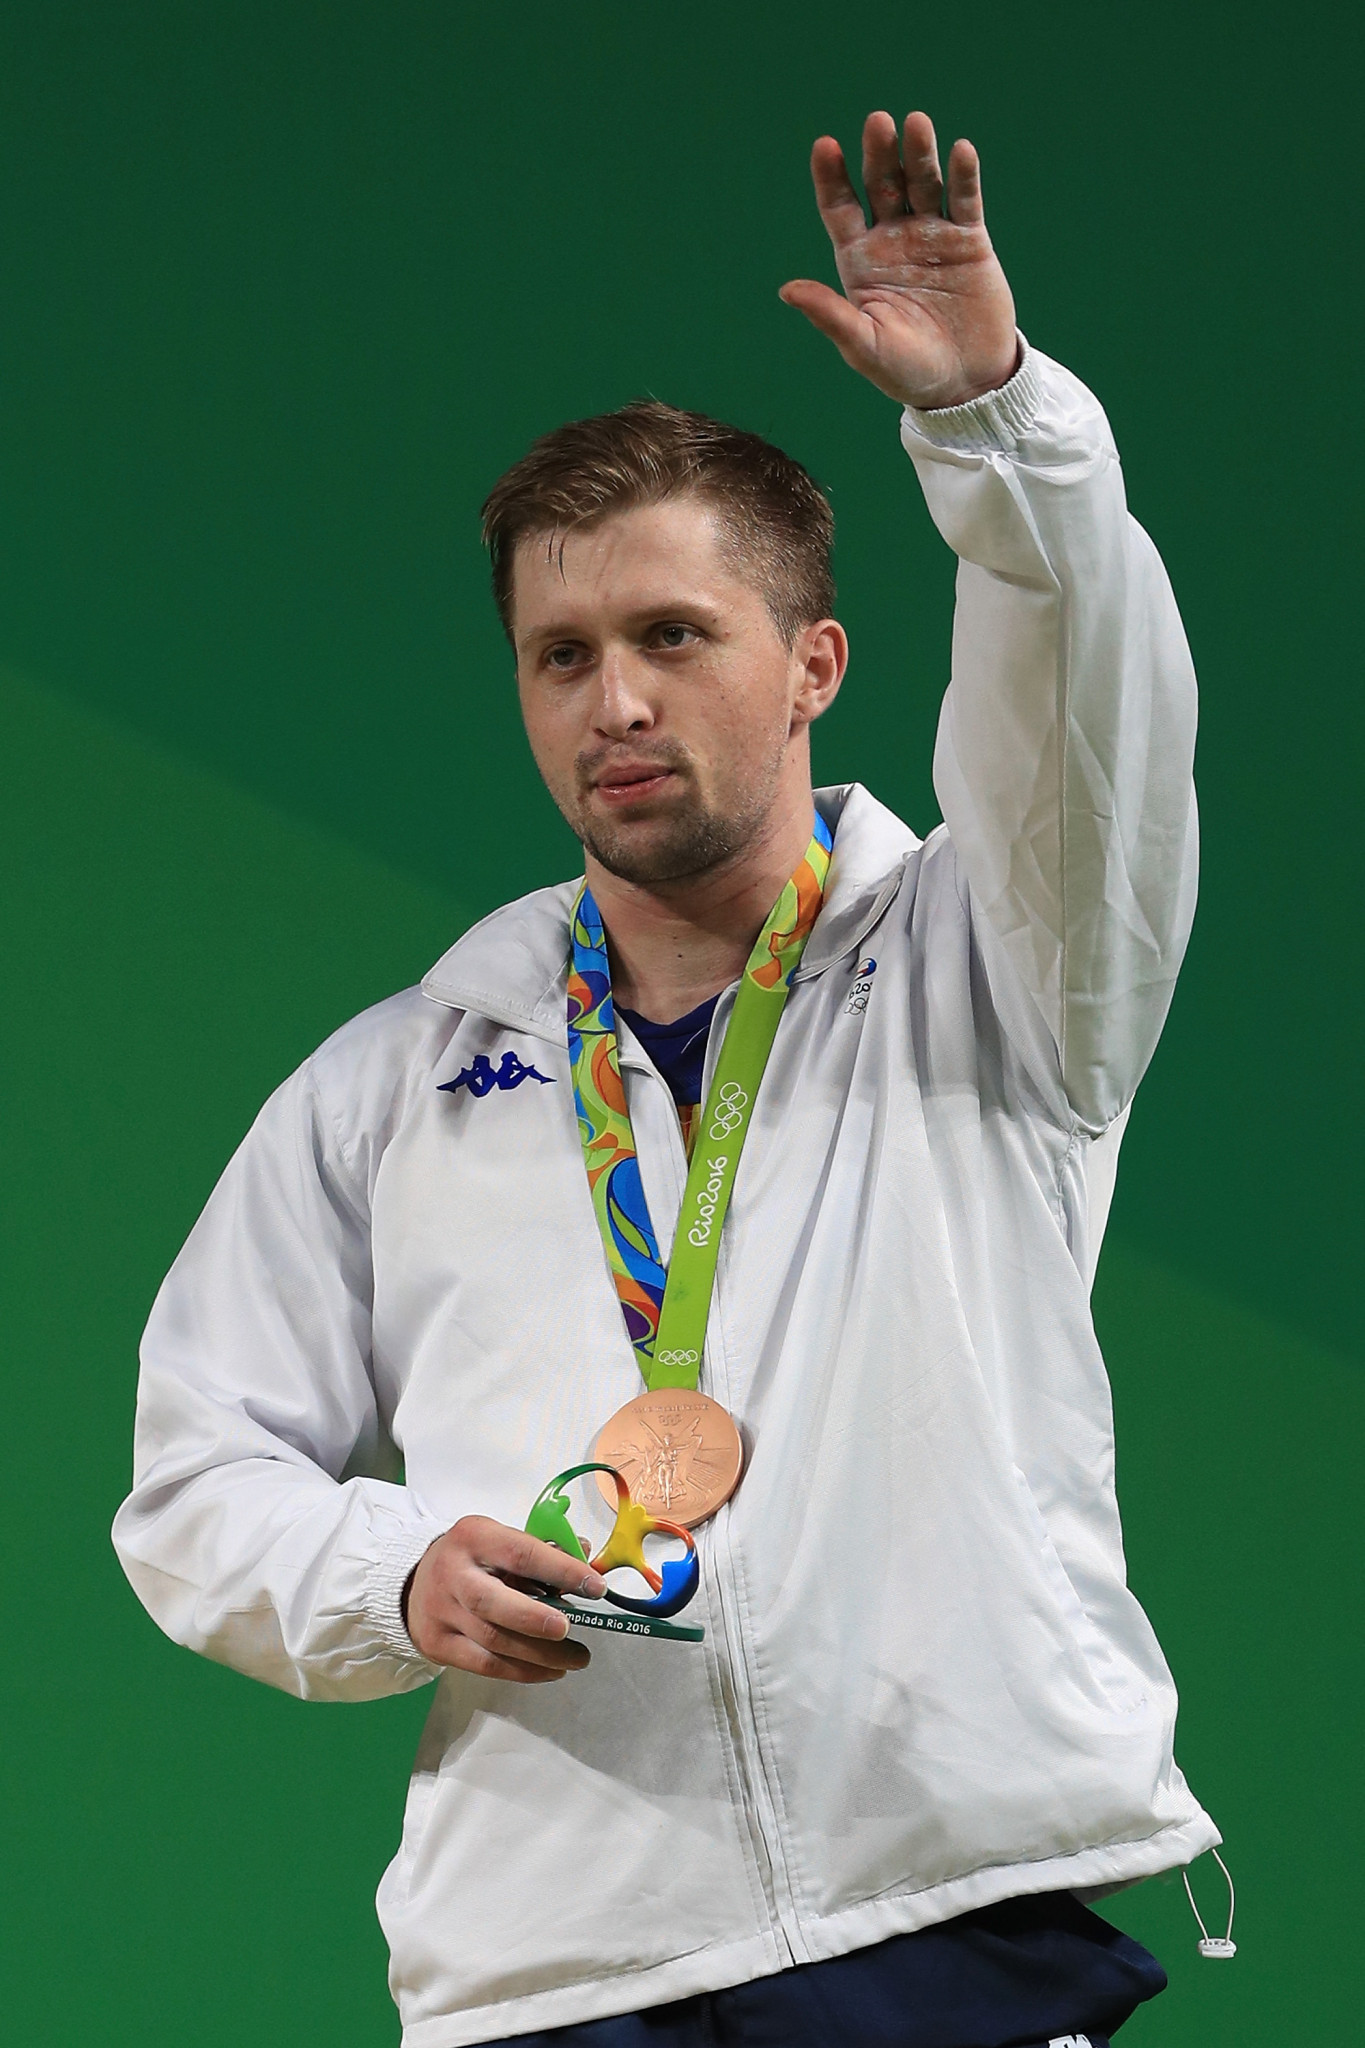 Gabriel Sîncrăian won an Olympic bronze in the 85 kilograms at Rio 2016 before testing positive for testosterone and being stripped of the medal ©Getty Images